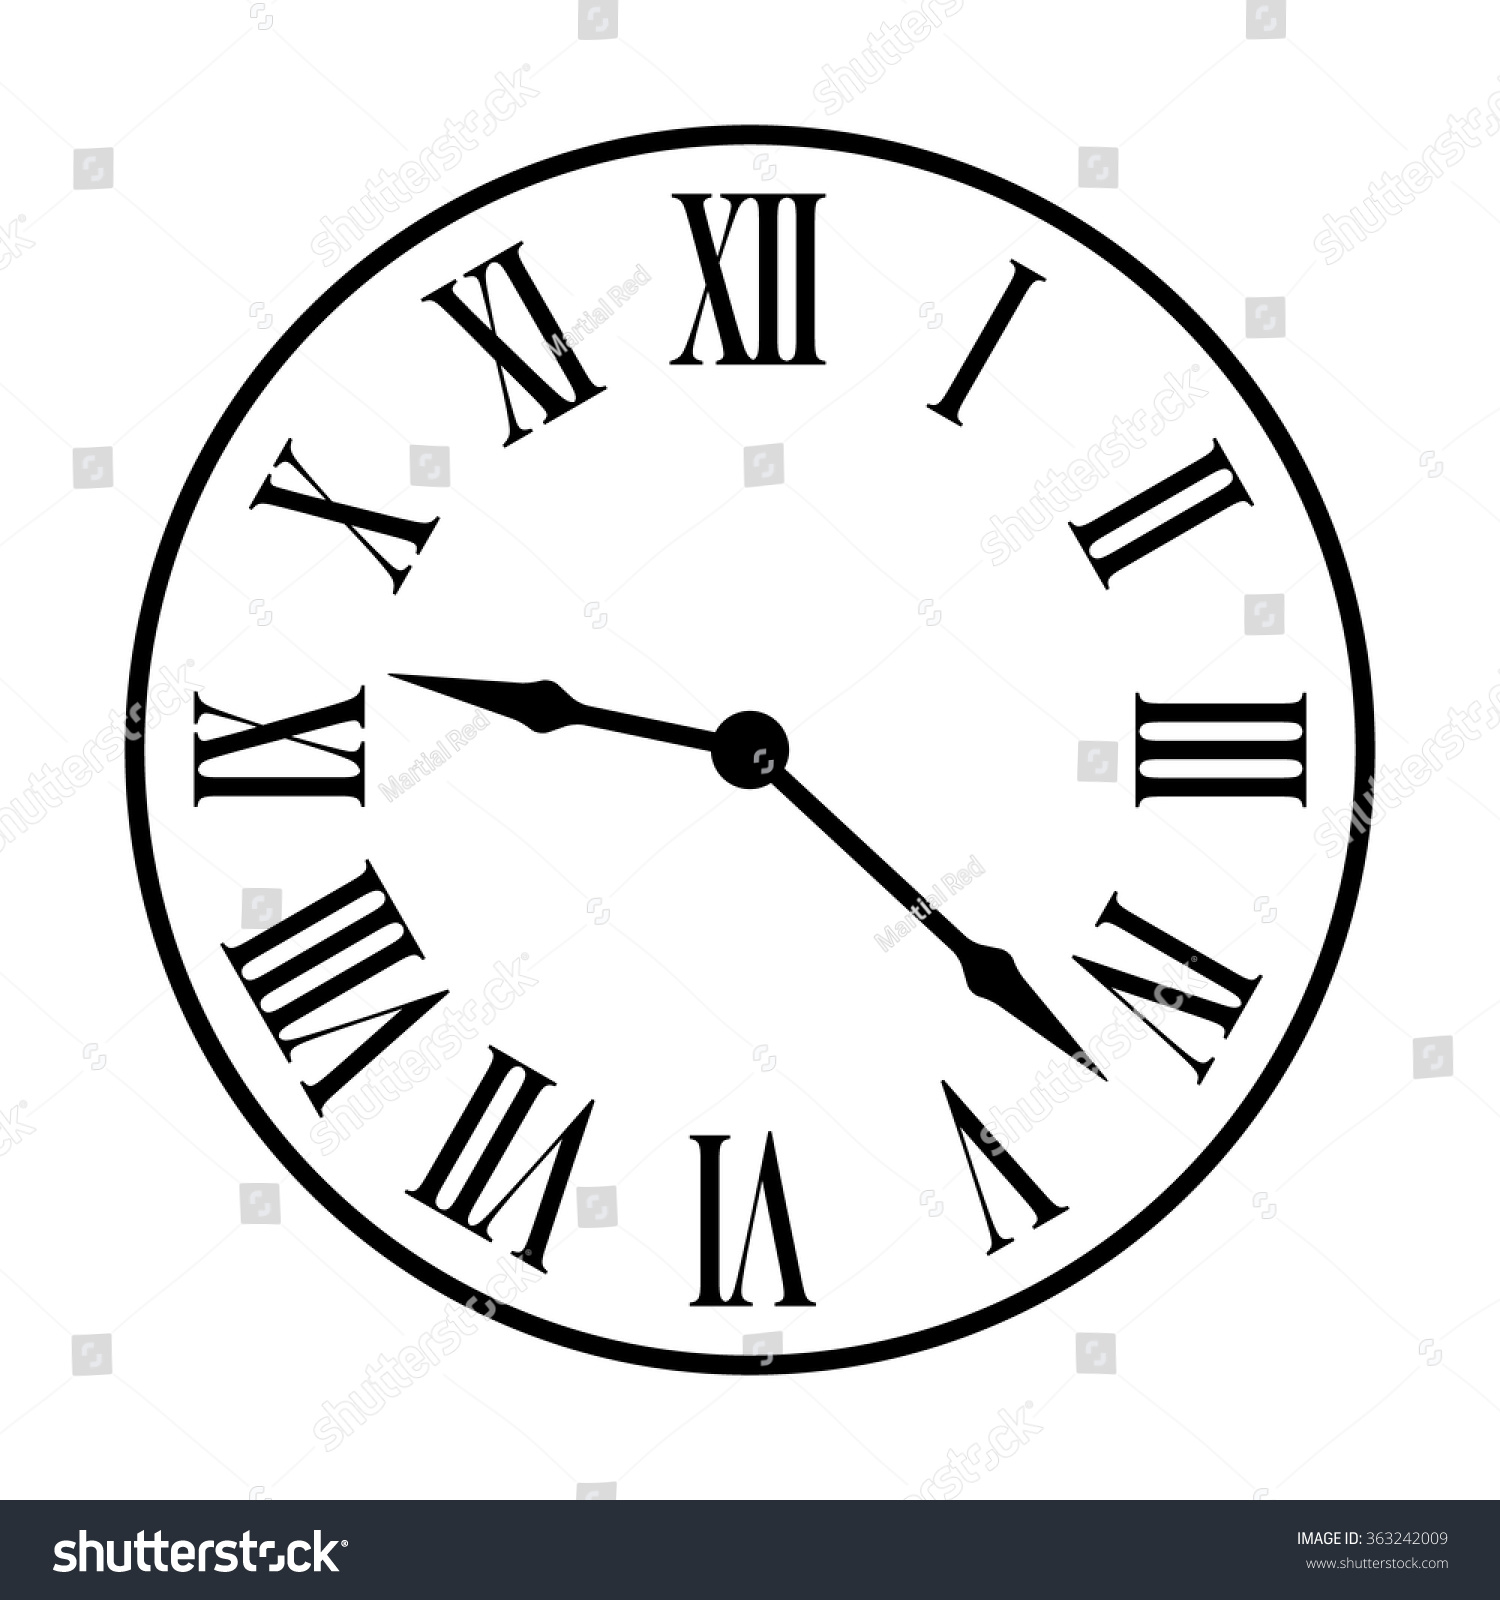 Line Drawing Clock Face : Old fashion vintage clock face line art icon for apps and